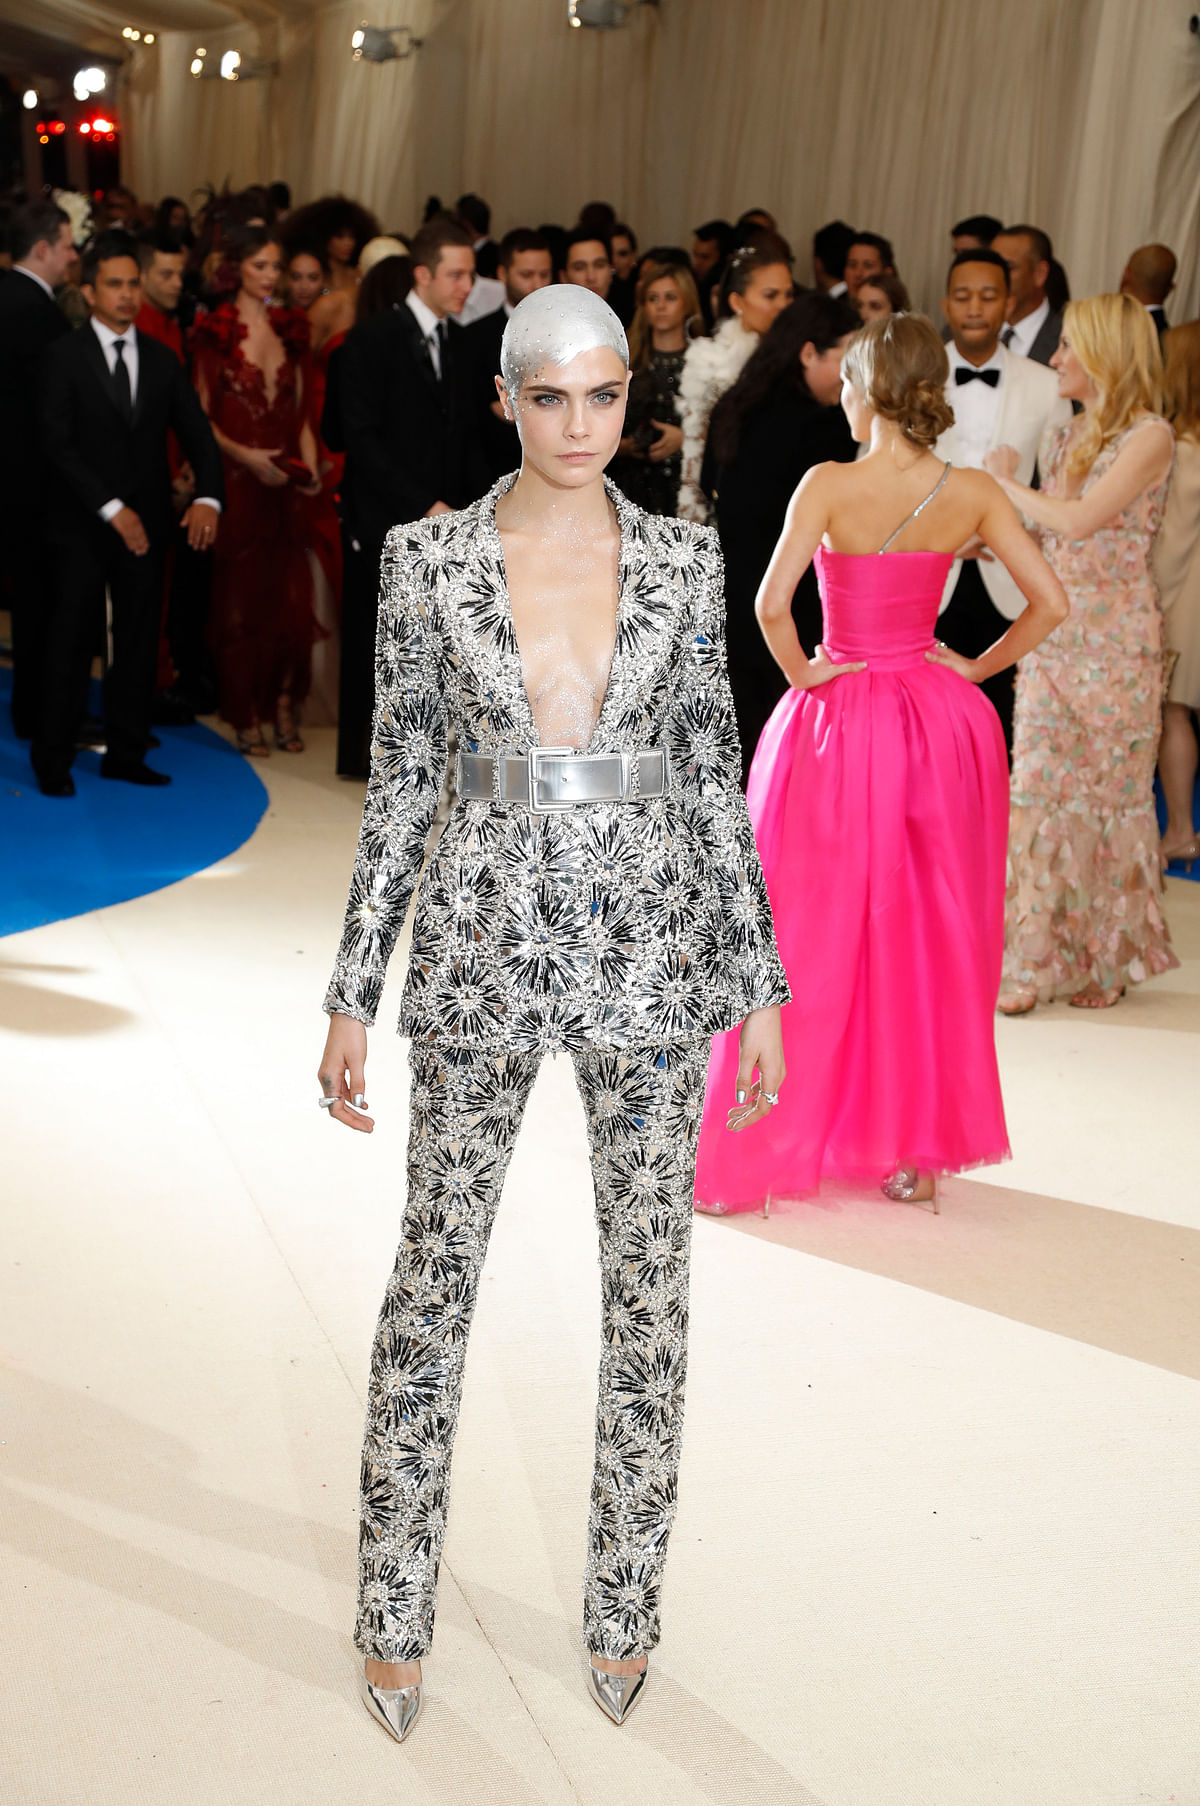 A bald Cara Delevingne sports a futuristic look and we can't look away! (Photo: Reuters)